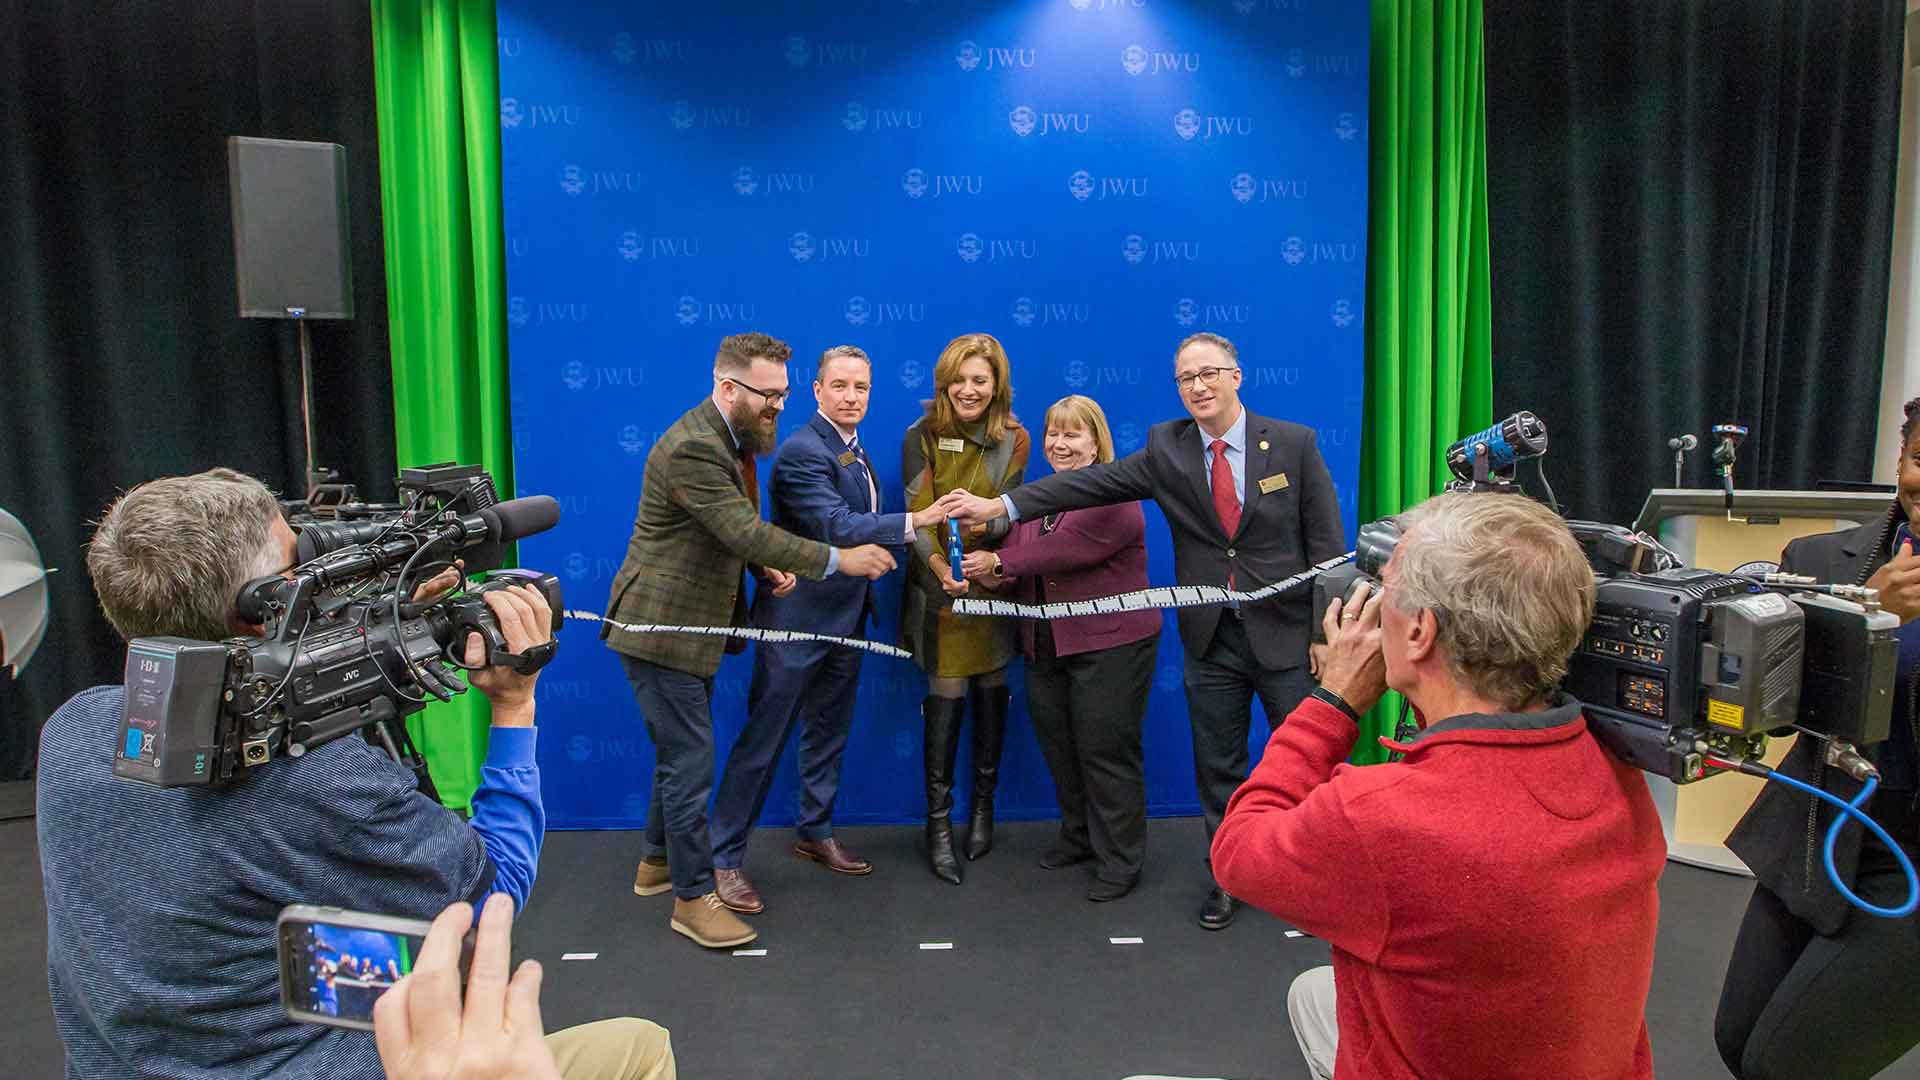 JWU Providence opened the Center for Media Production in October 2019